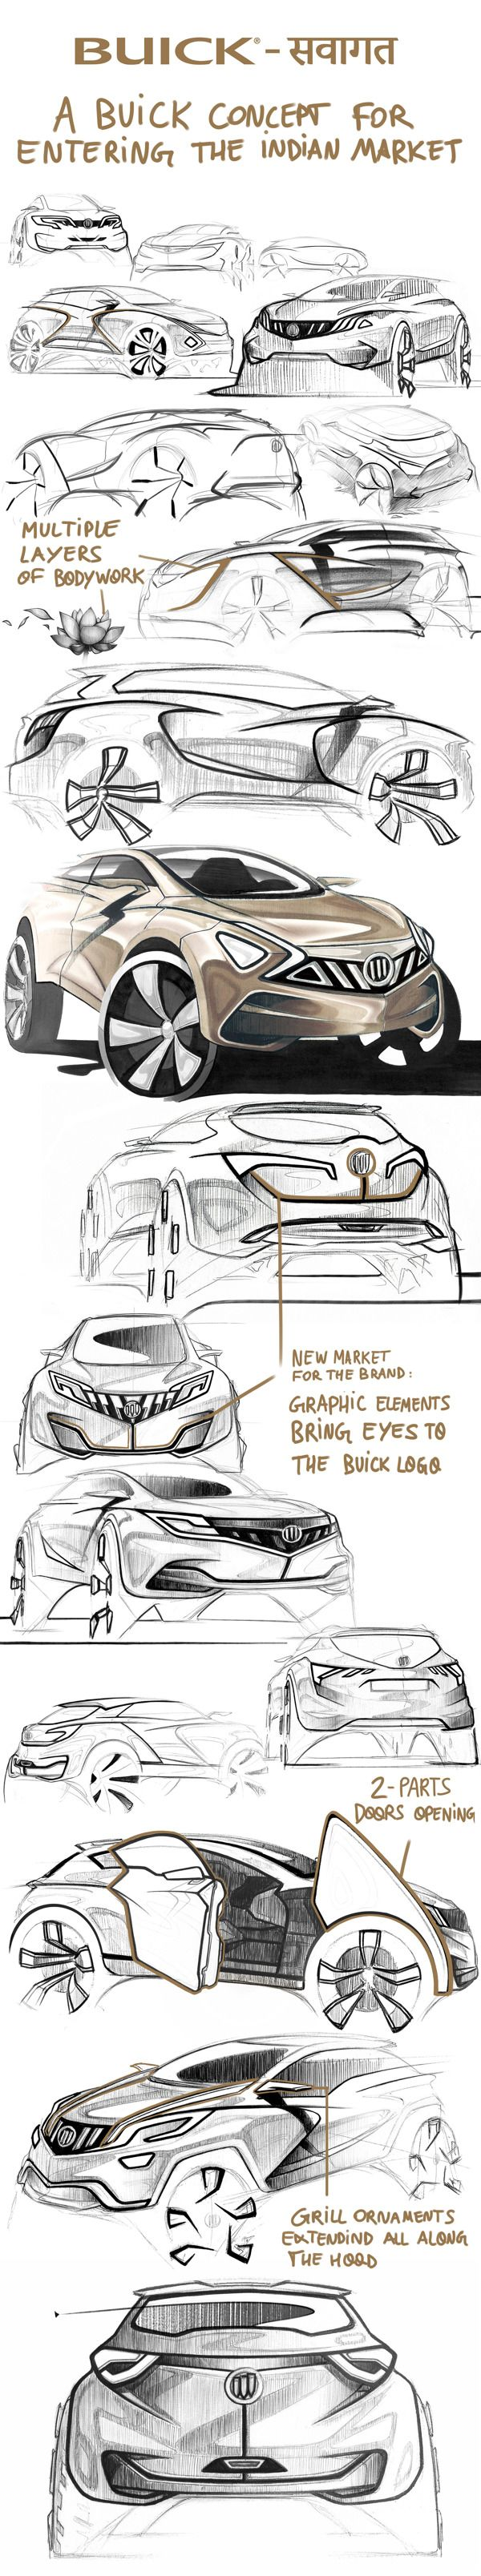 257 best Skech cars images on Pinterest   Car sketch, Sketches and ...